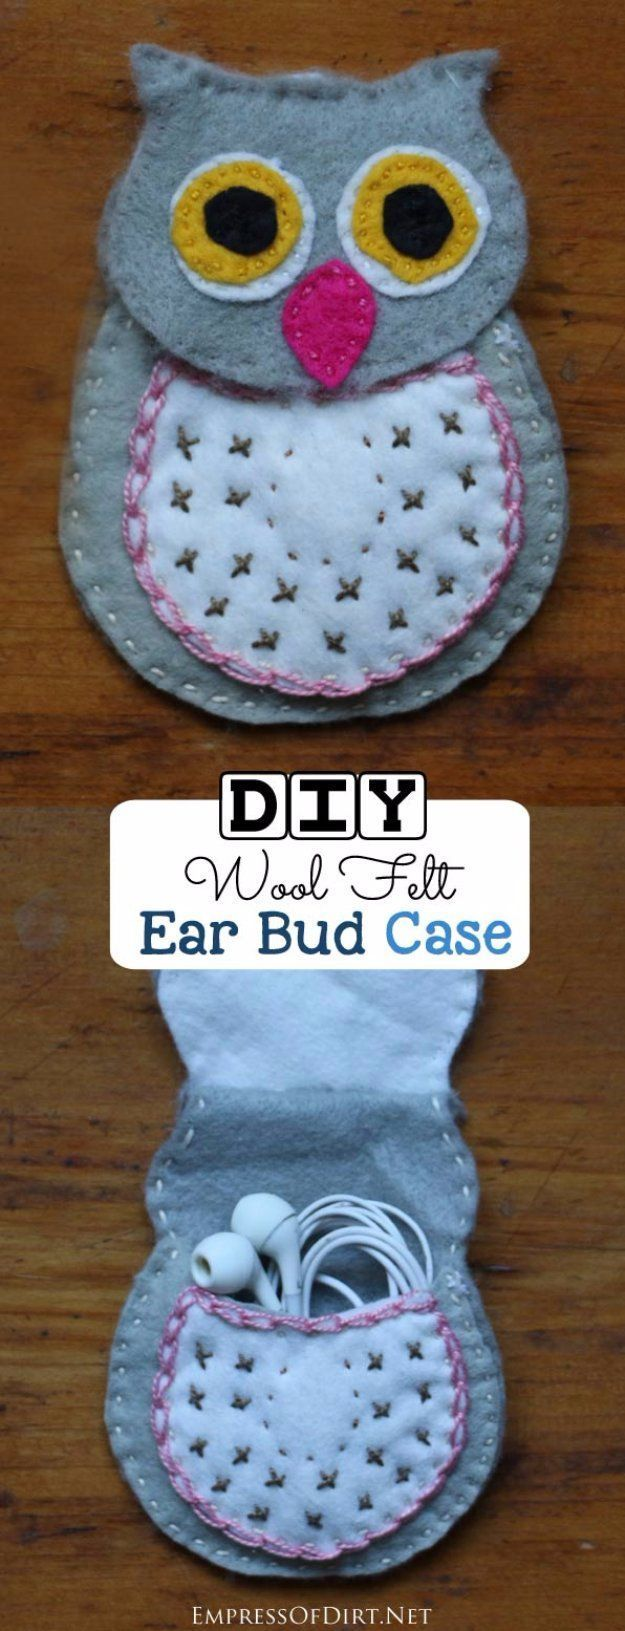 Sewing crafts for teens - 50 Diy Sewing Gift Ideas You Can Make For Just About Anyone